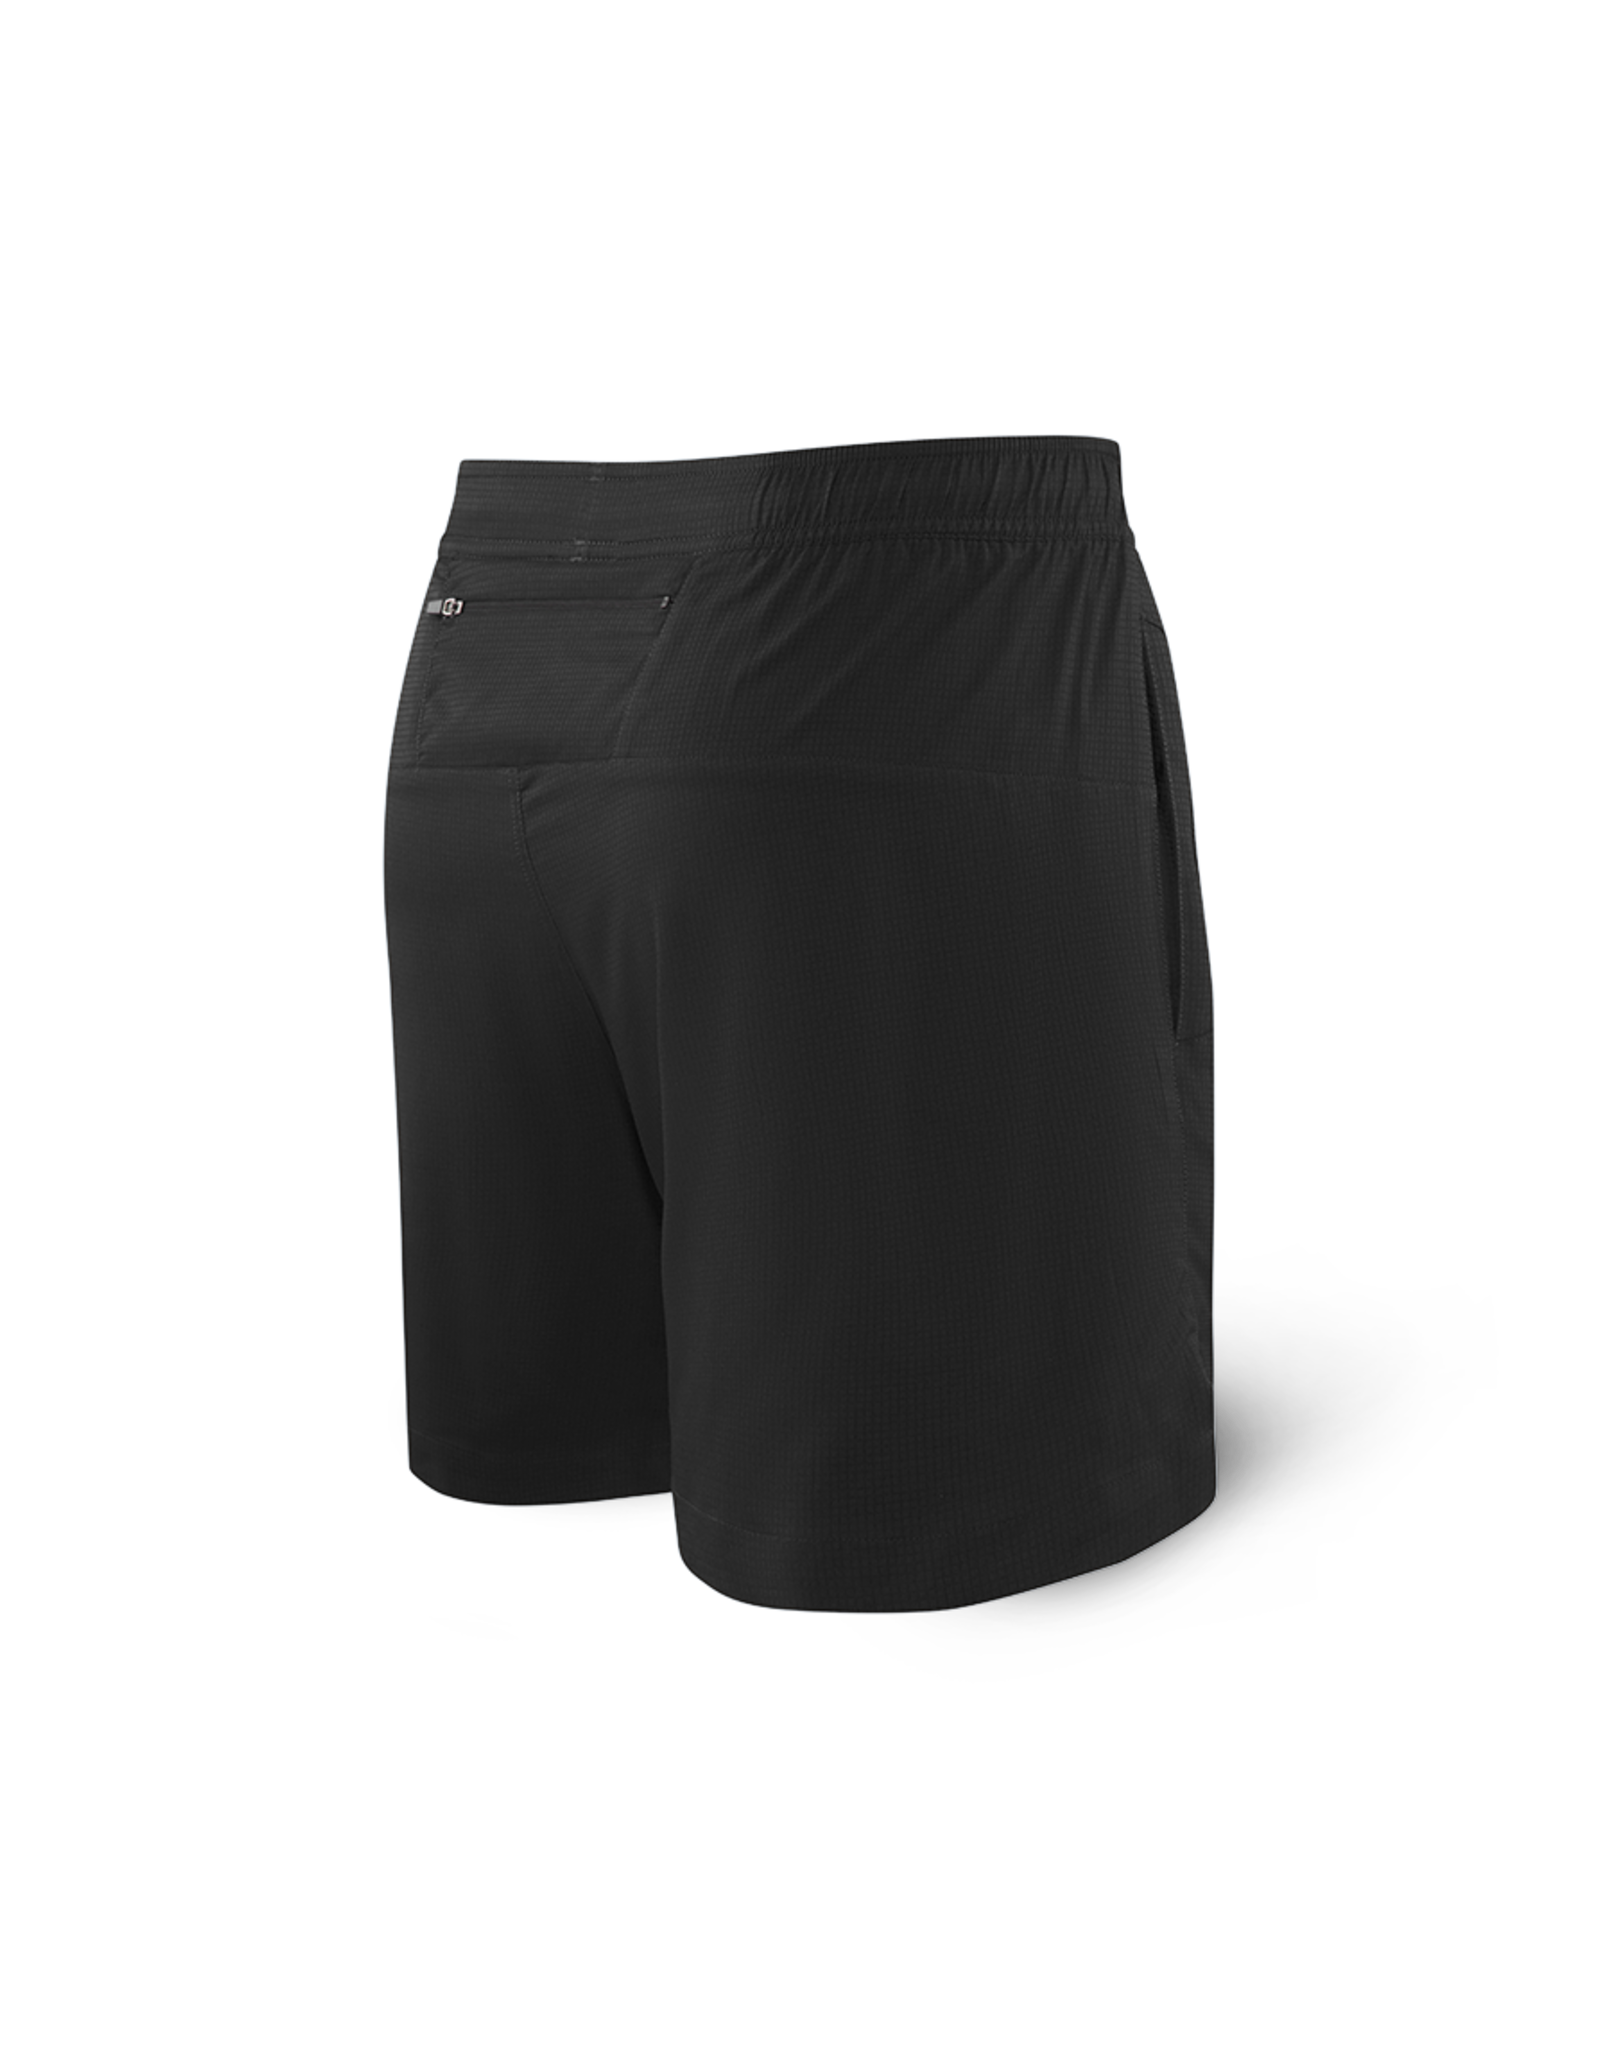 SAXX SAXX KINETIC 2N1 SPORT SHORTS - (ALL COLORS)